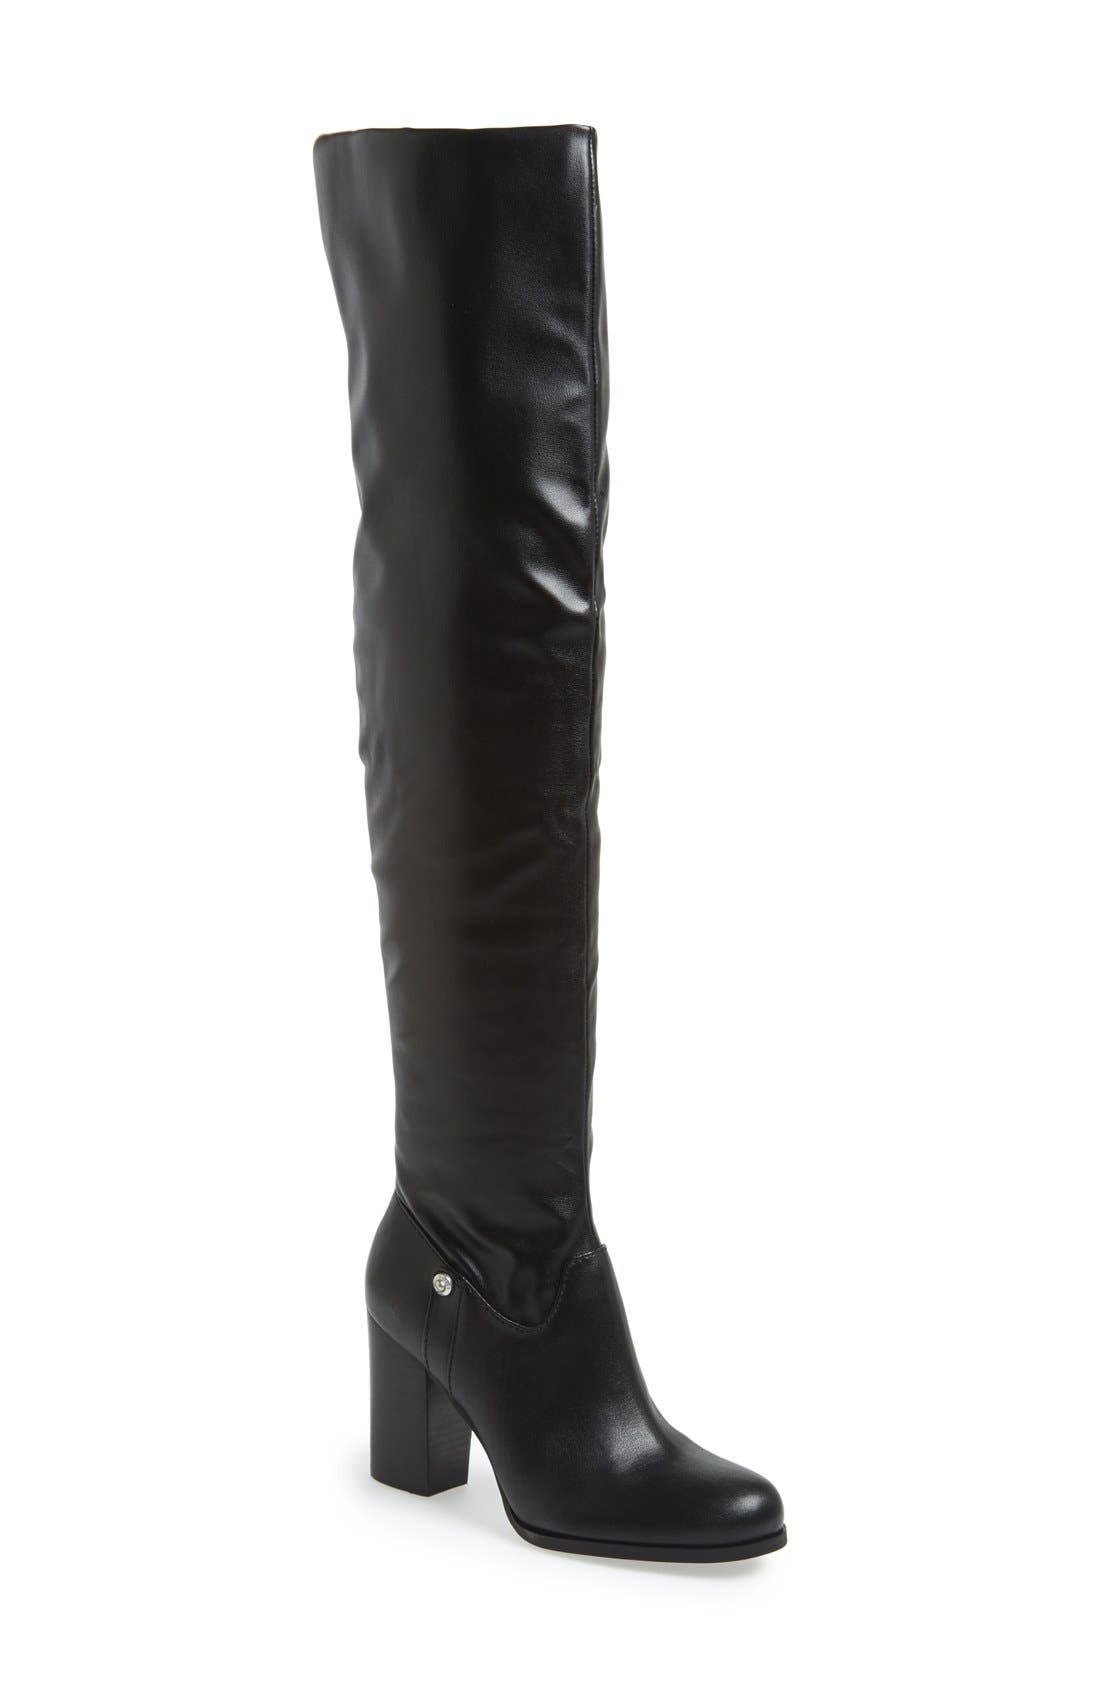 Main Image - GUESS 'Dandra' Foldable Over the Knee Boot (Women)